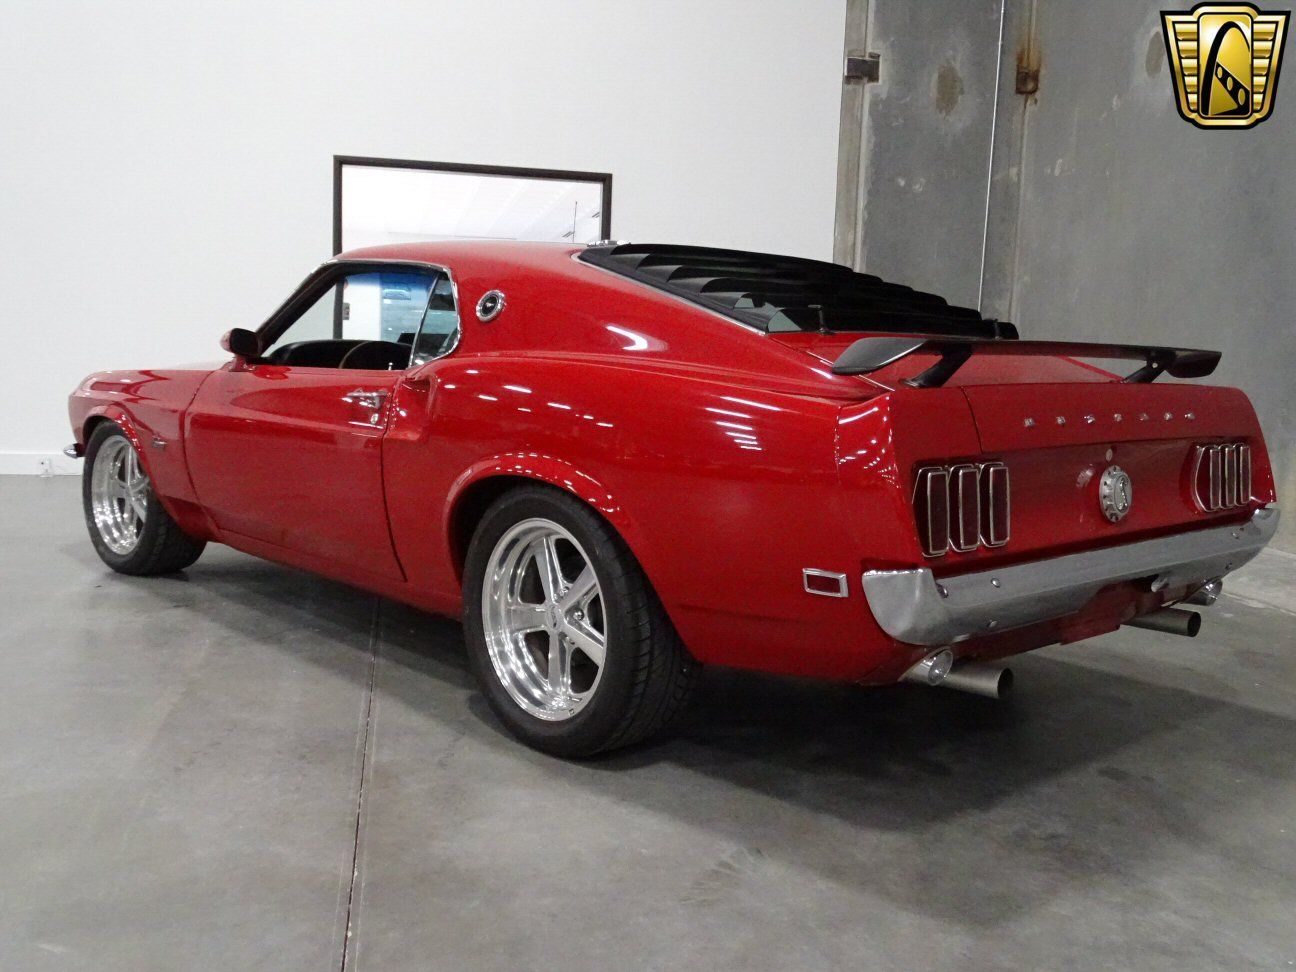 1969 ford mustang 428 cid v8 3 speed automatic for sale dallas texas